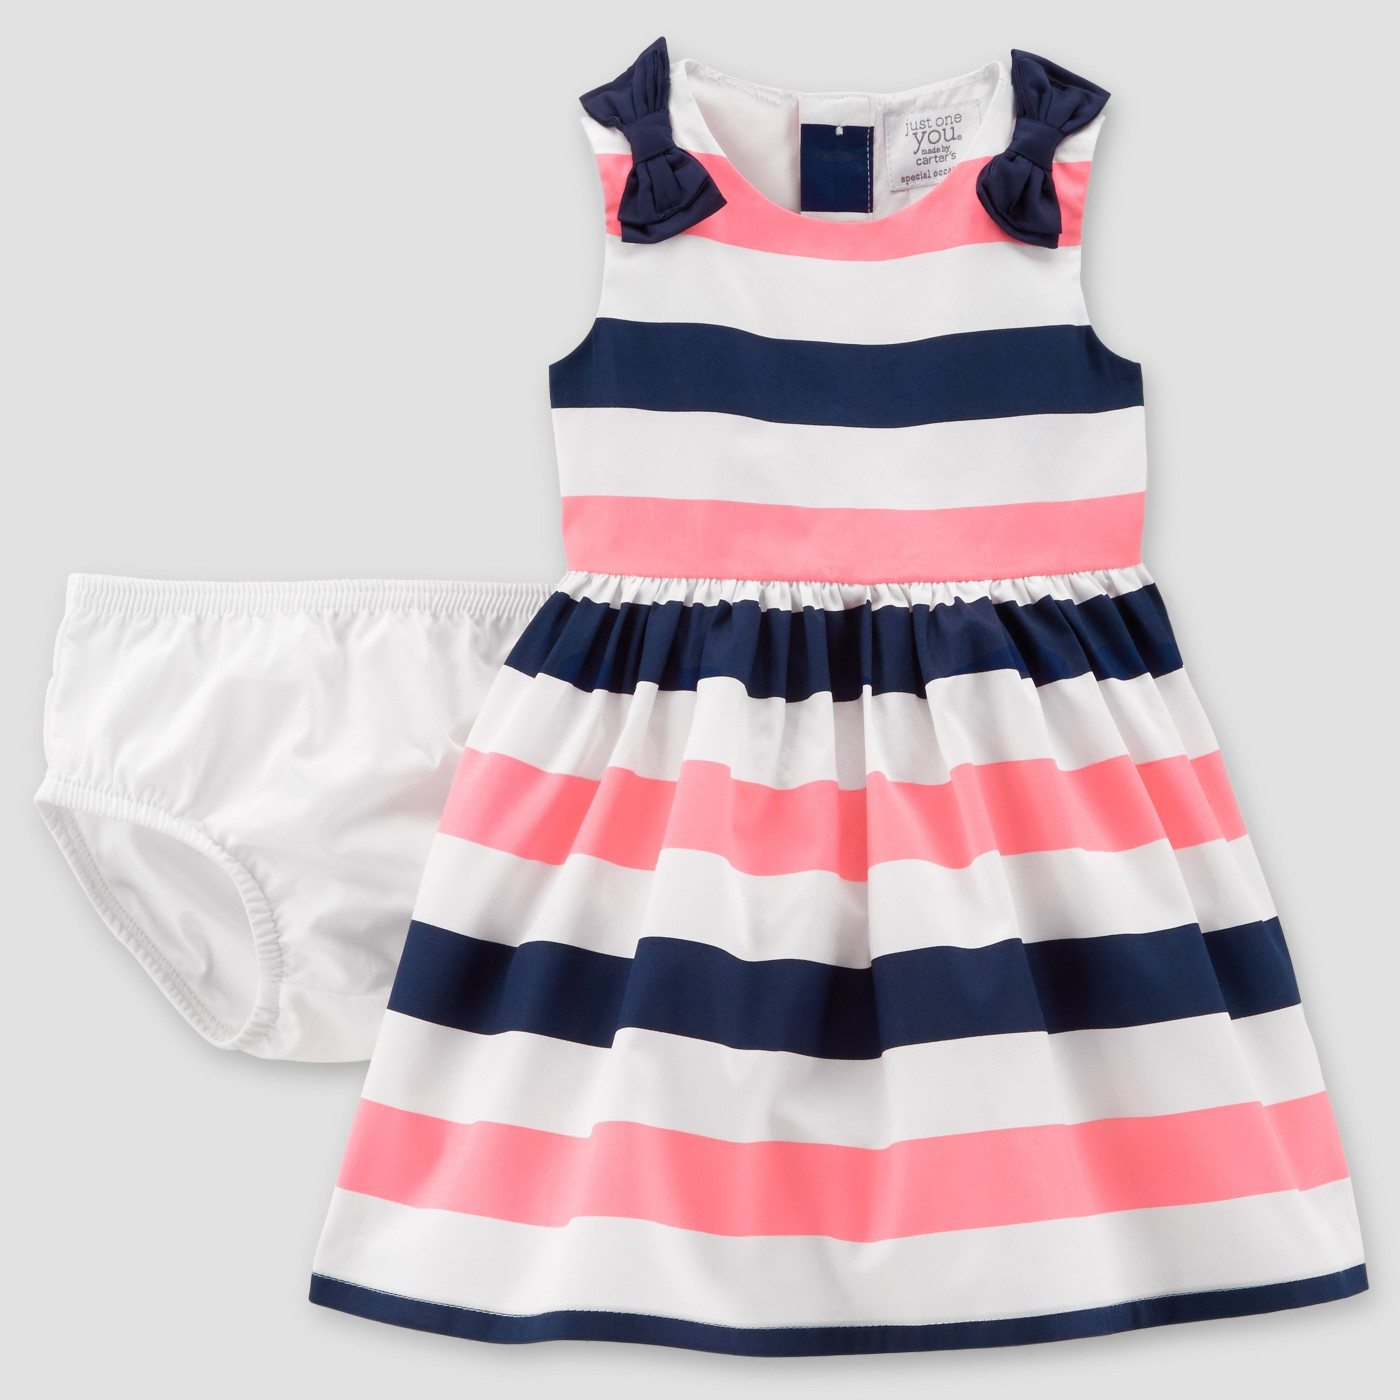 b972047f3b93 Get Baby Girl Dresses For 50% Off At Target - Simplemost